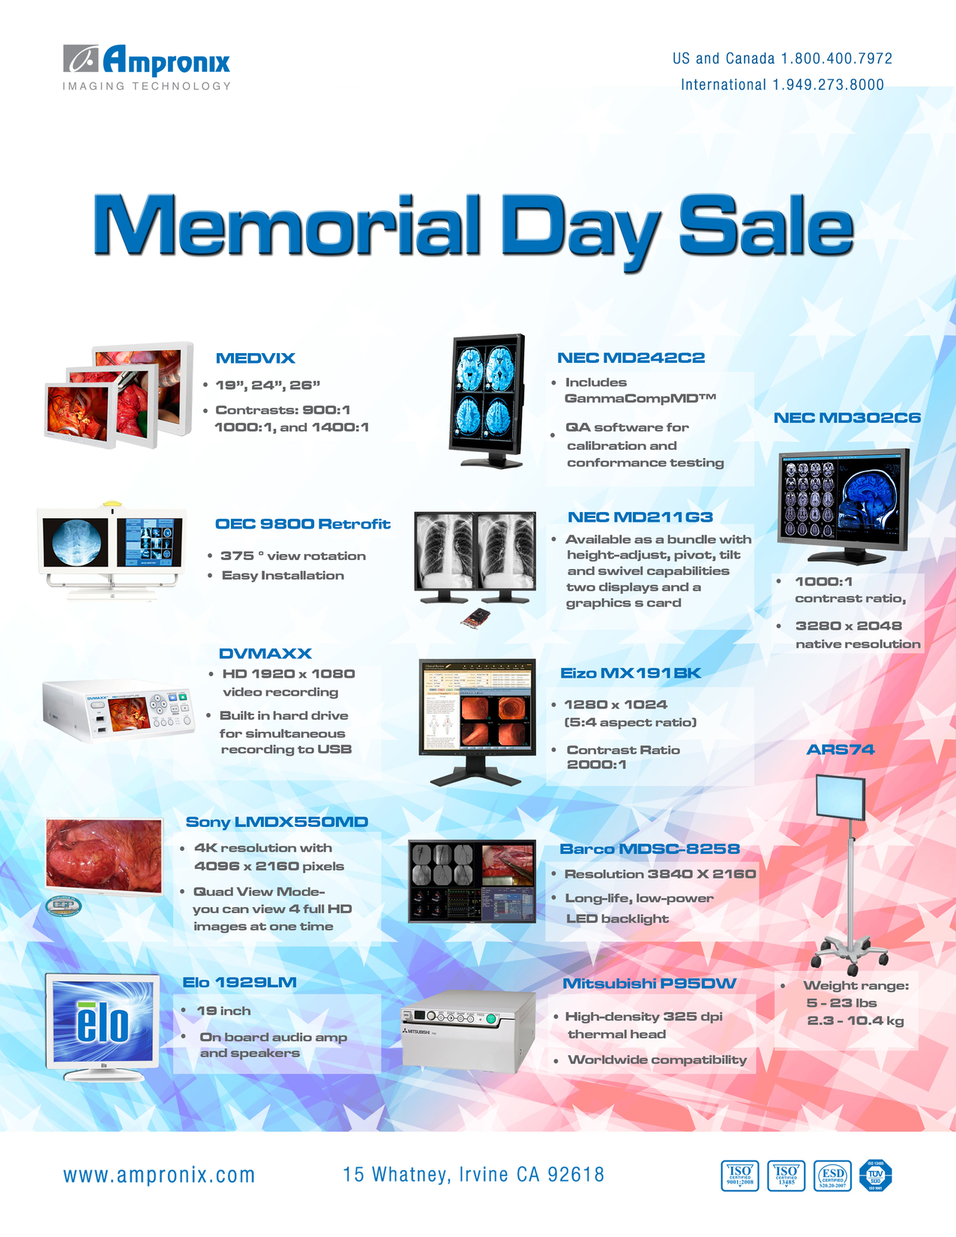 Ampronix Memorial Day Sale